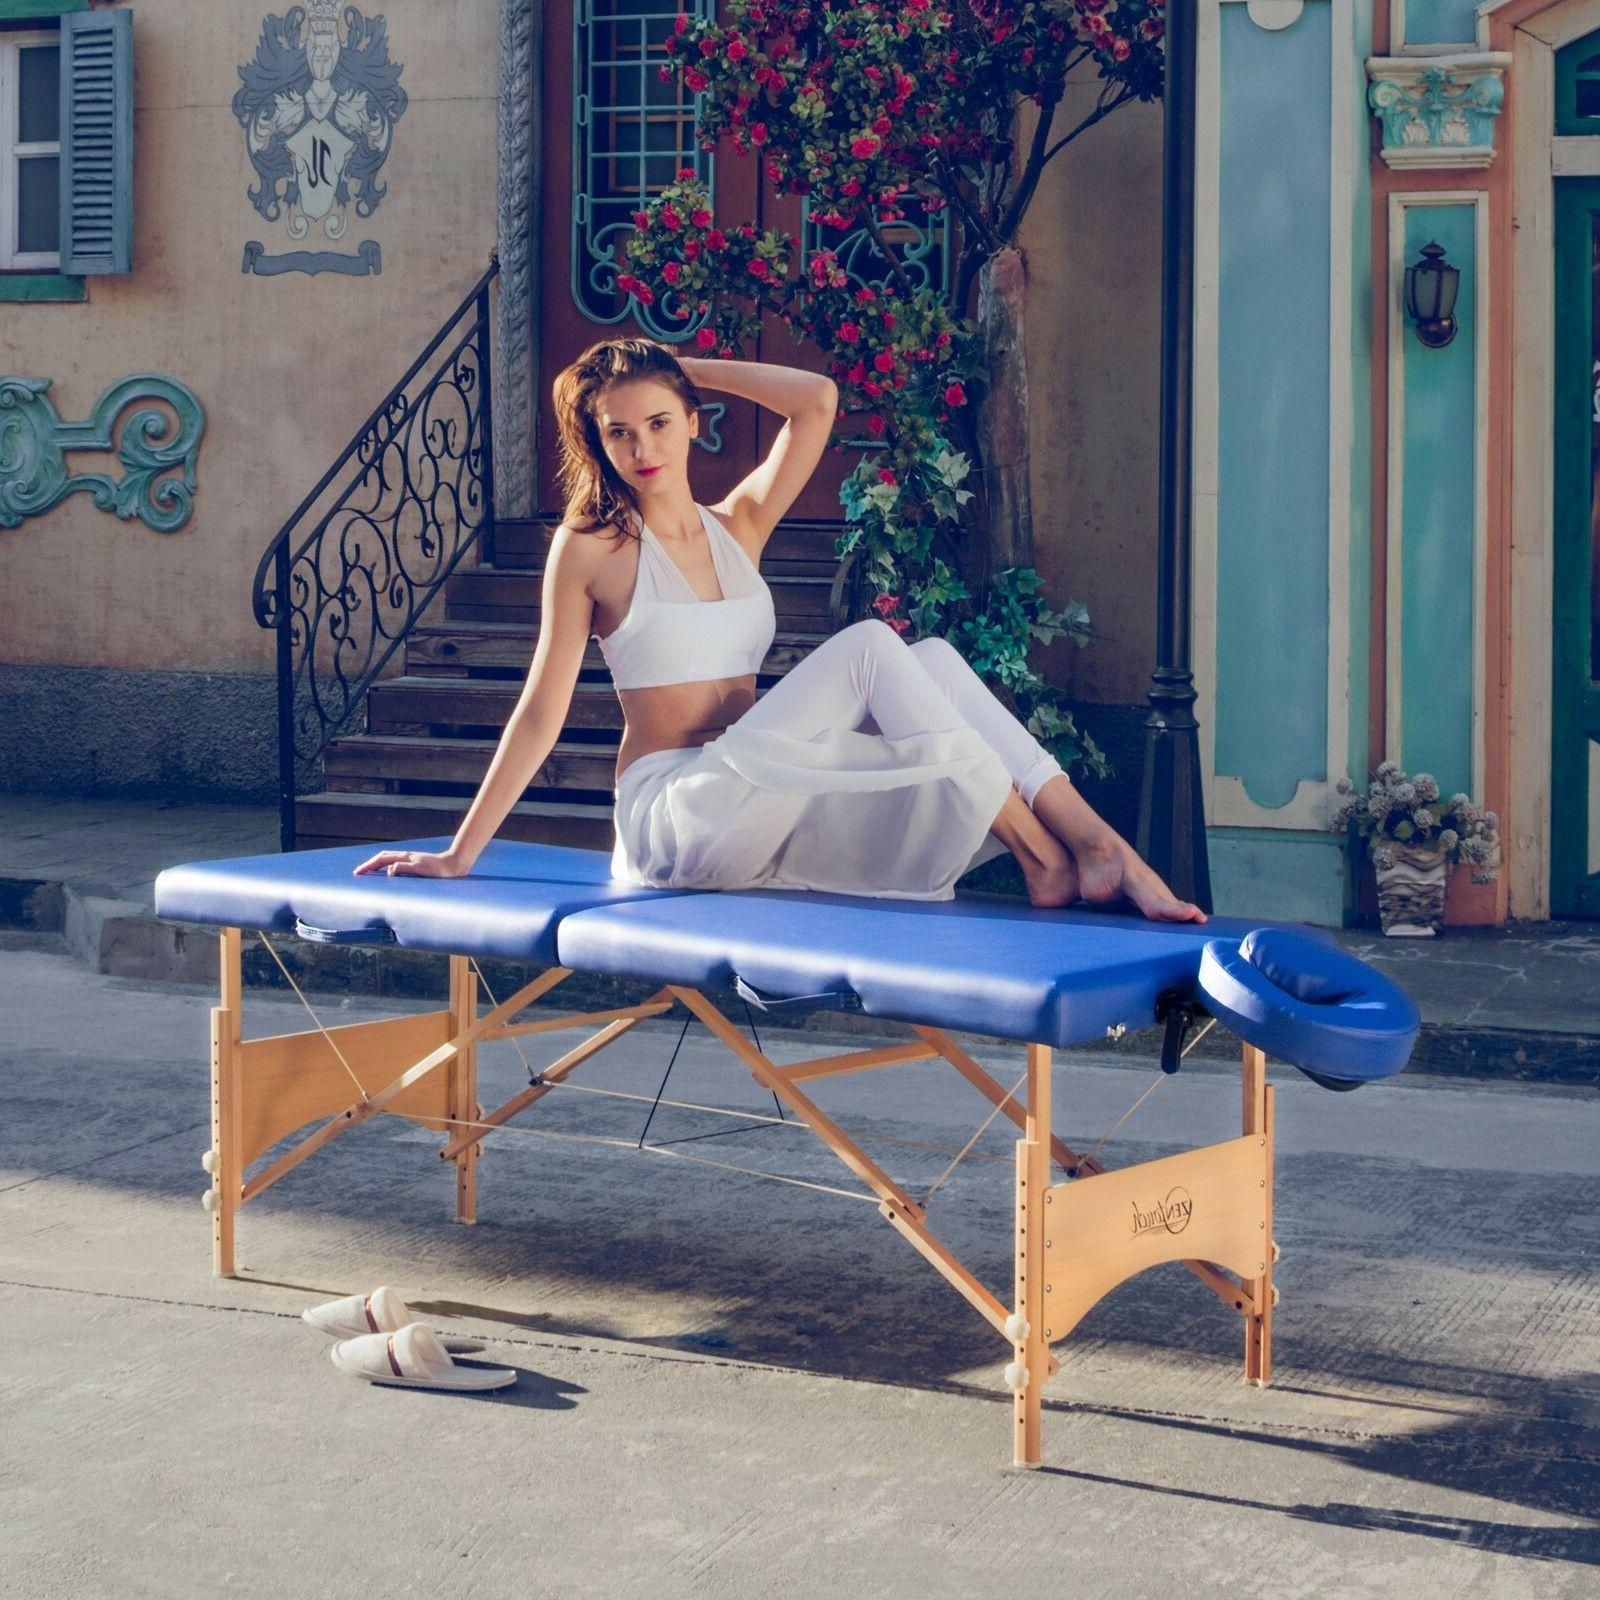 table brady portable lightweight bed